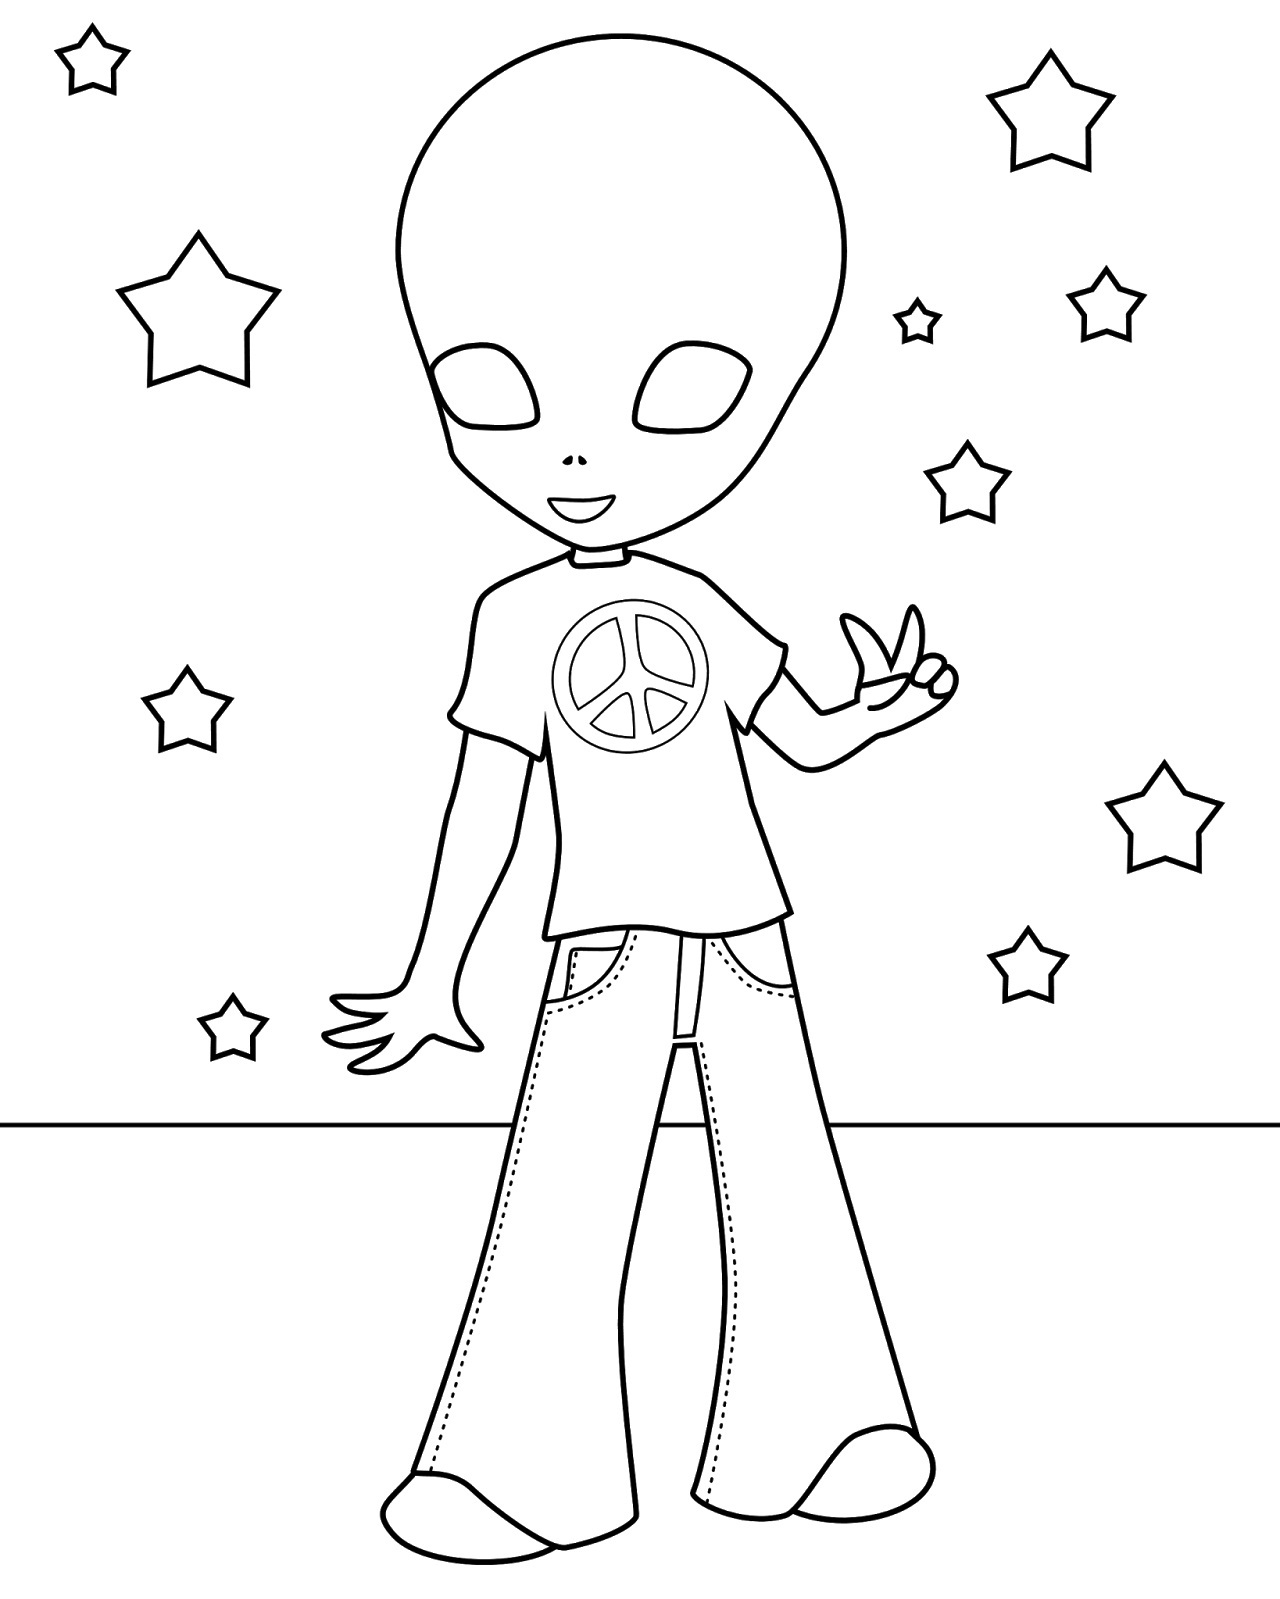 toy story alien coloring sheet cute alien coloring pages at getdrawings free download coloring story sheet toy alien